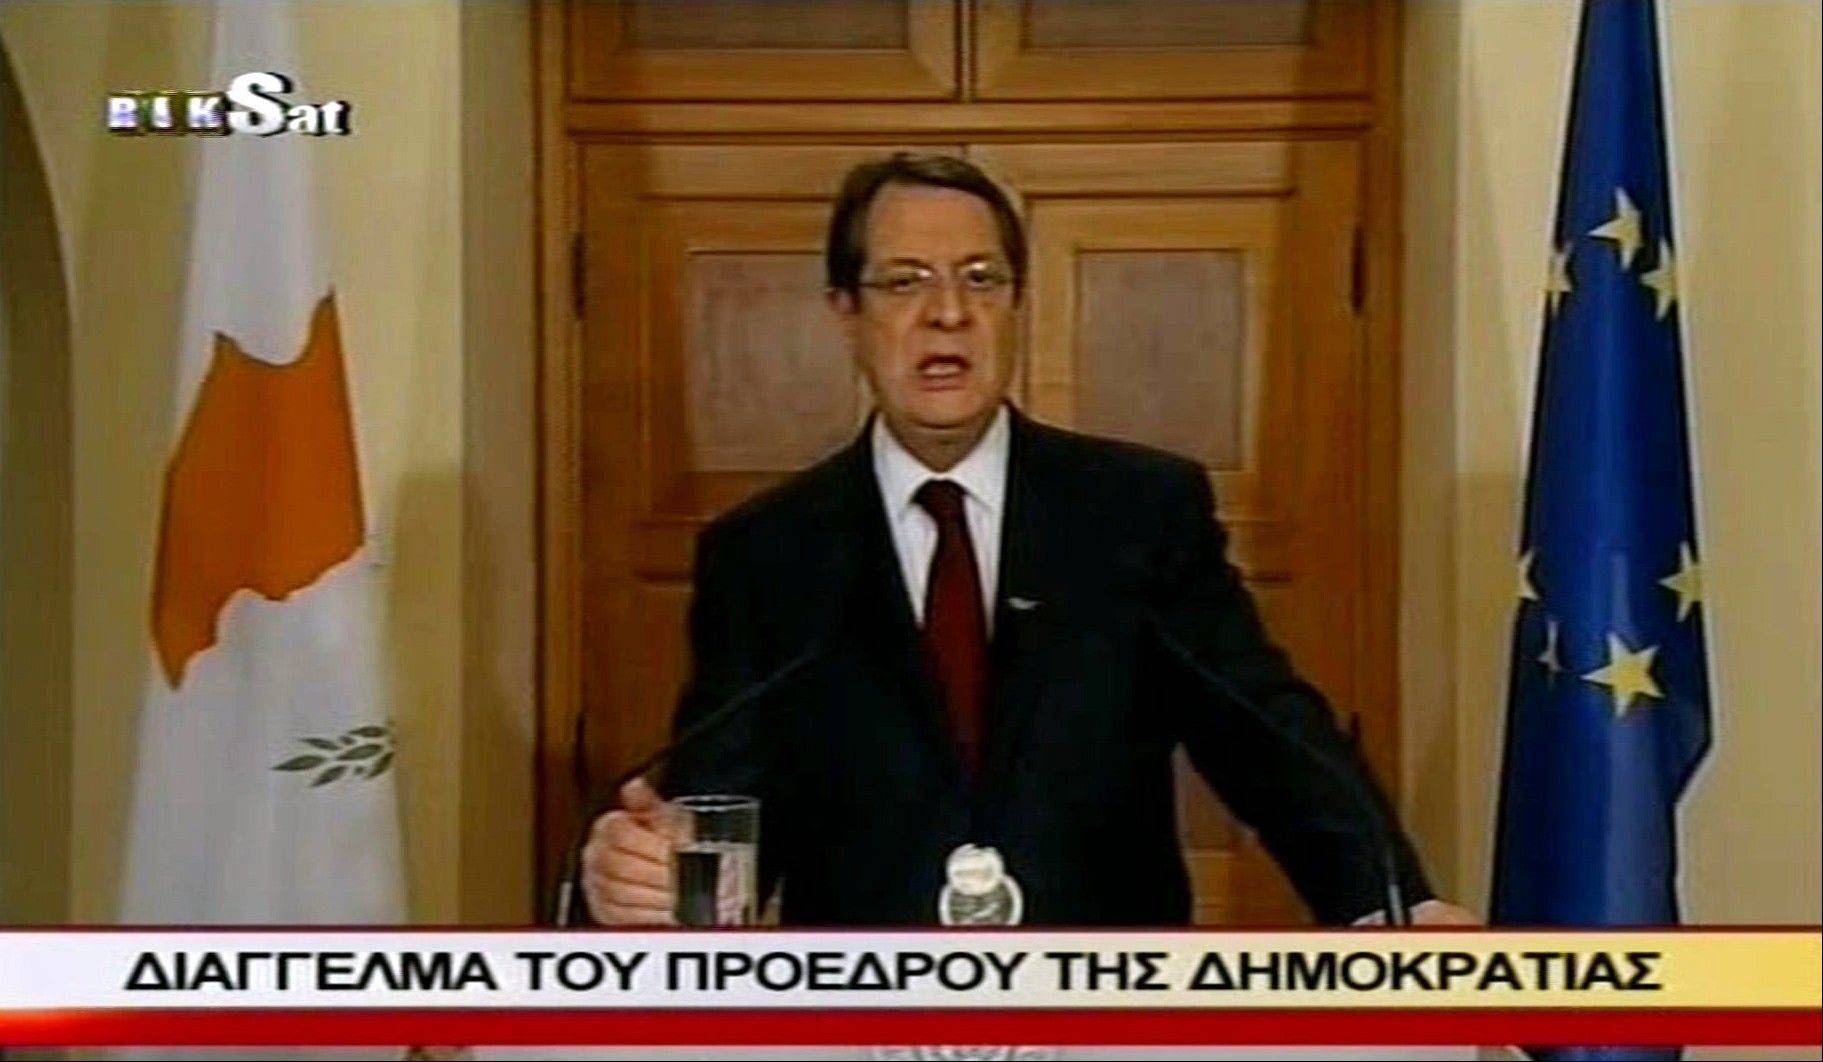 In this image made from video, Cyprus' president Nikos Anastasiades addresses the nation in a televised broadcast Sunday. He said he is trying to amend a detested bailout plan that would tax bank deposits across the country to reduce its effect on small savers.